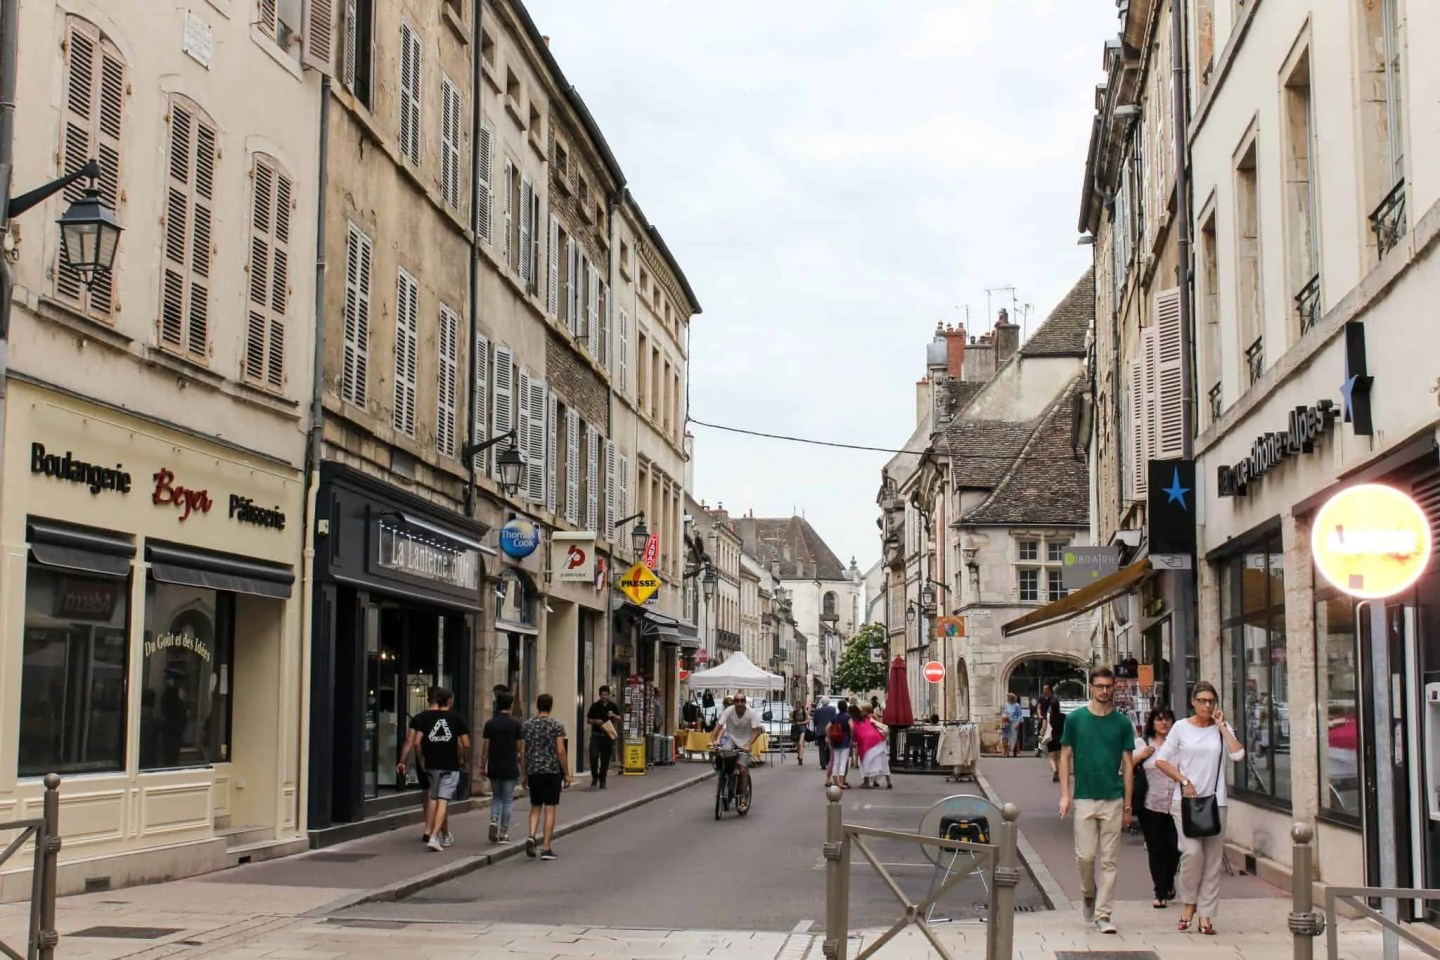 Beaune, France - the wine capital of Burgundy, things to do and see in and around beaune france, Beaune tourisme